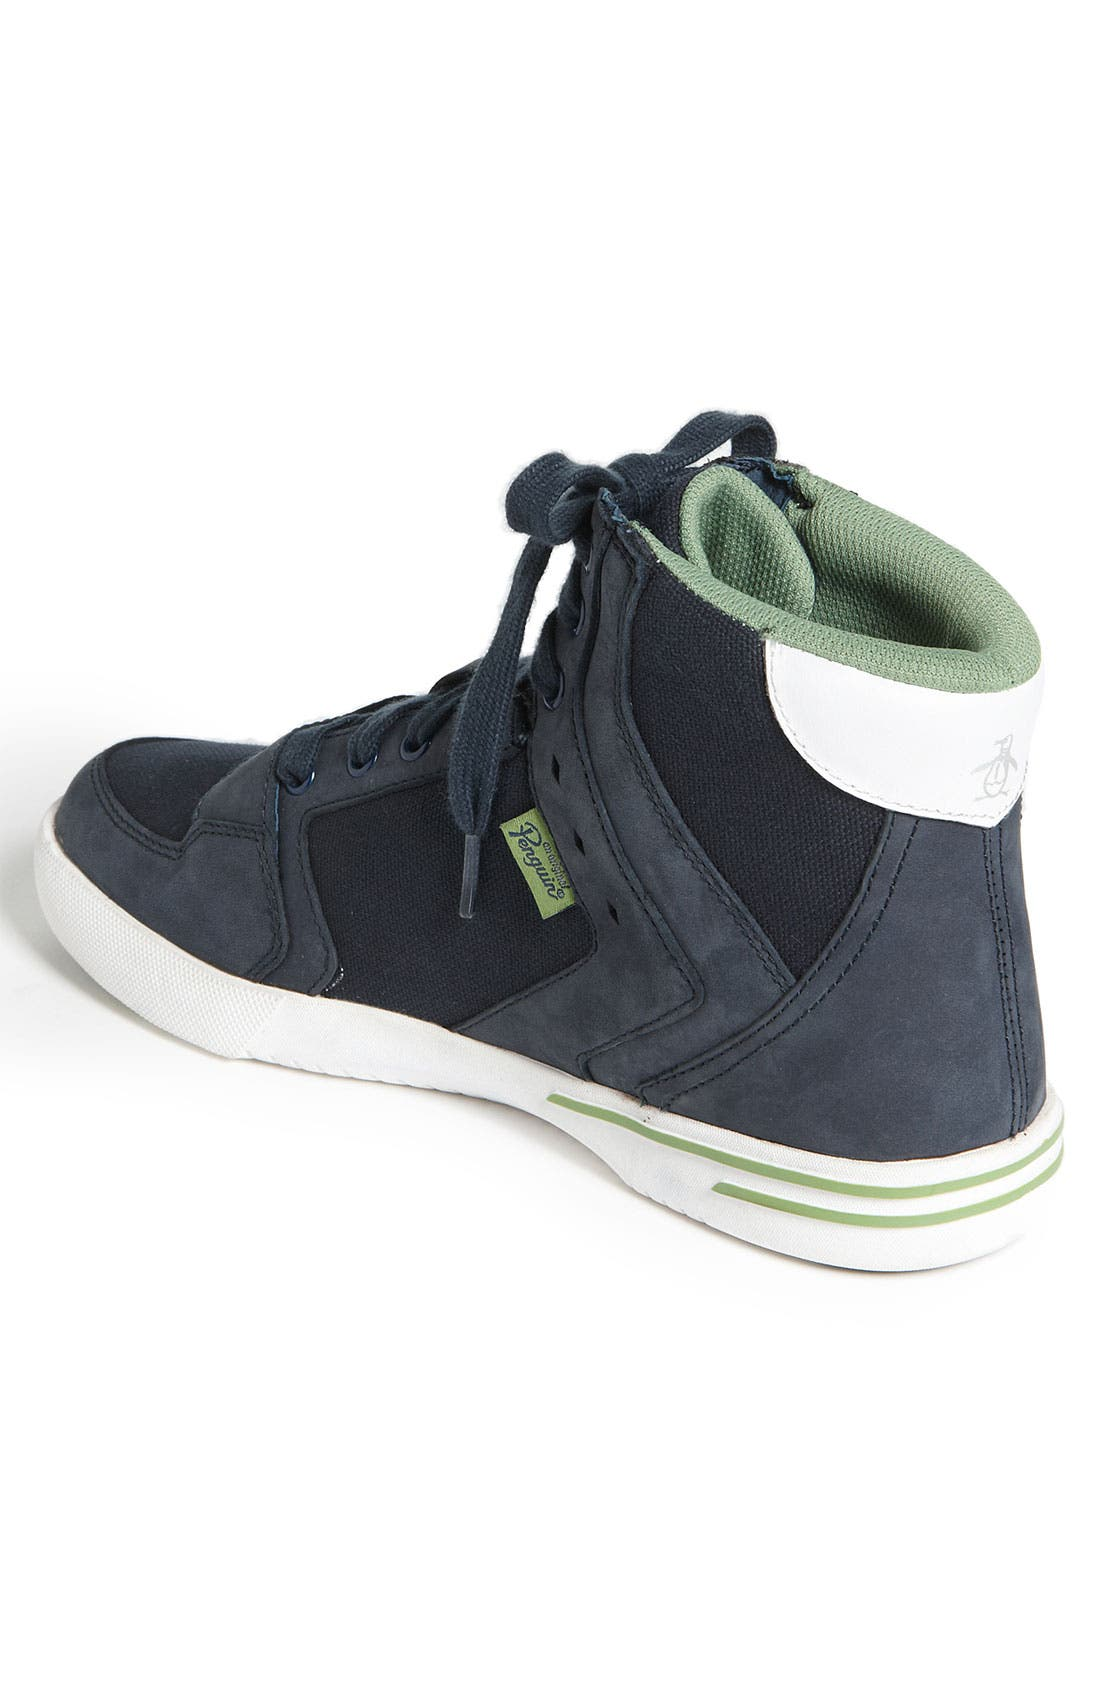 Alternate Image 2  - Original Penguin 'Moby' High Top Sneaker (Men)